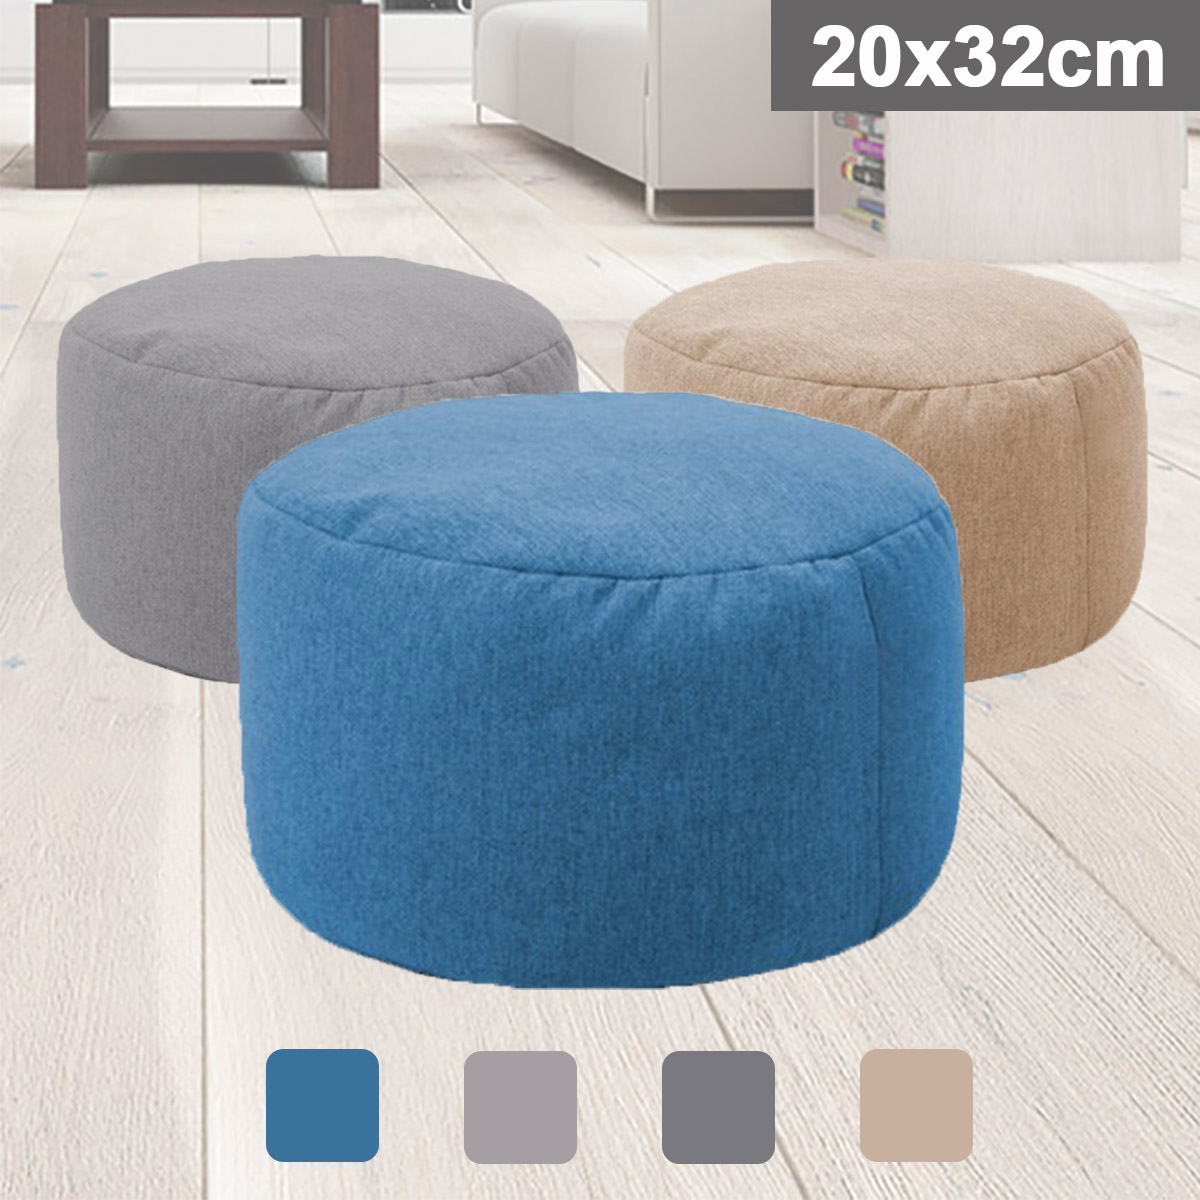 Small Round Lazy BeanBag Sofas Cover Waterproof Stuffed Animal Storage Toy Bean Bag Solid Color Chair Cover Beanbag Sofas